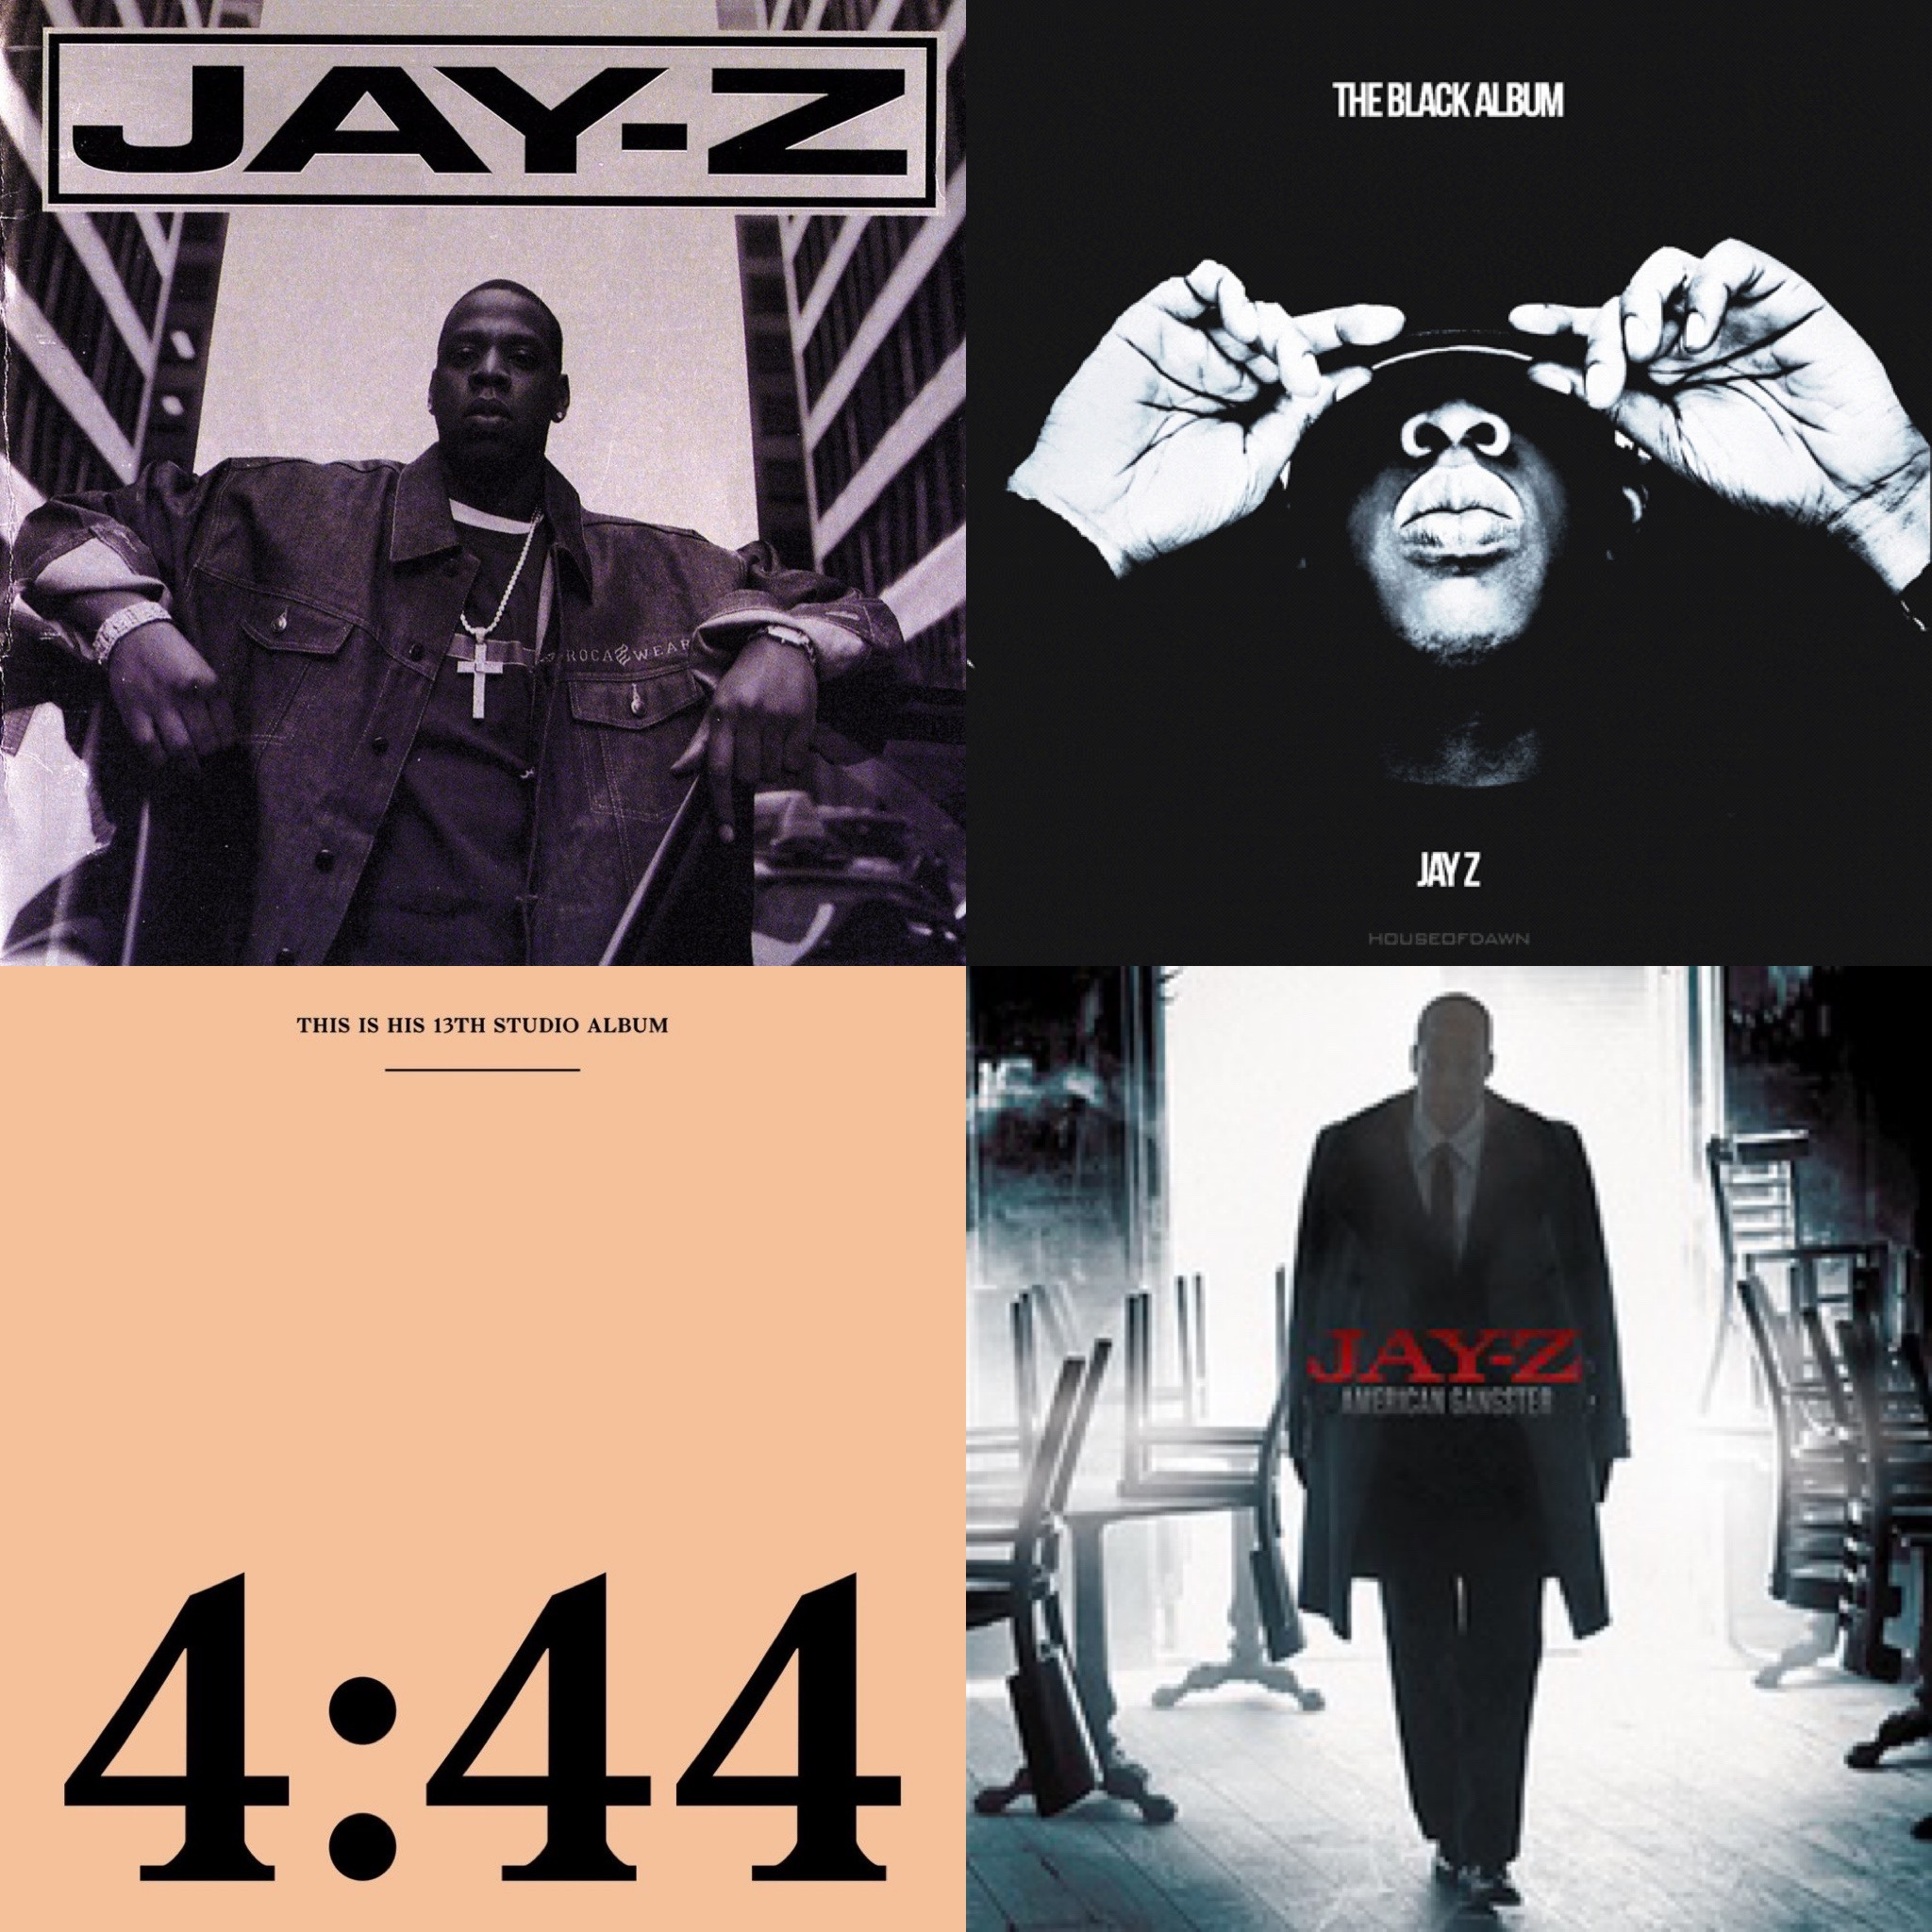 Ratings Game Music Presents Top 5 S Jay Z Albums Ratings Game Music